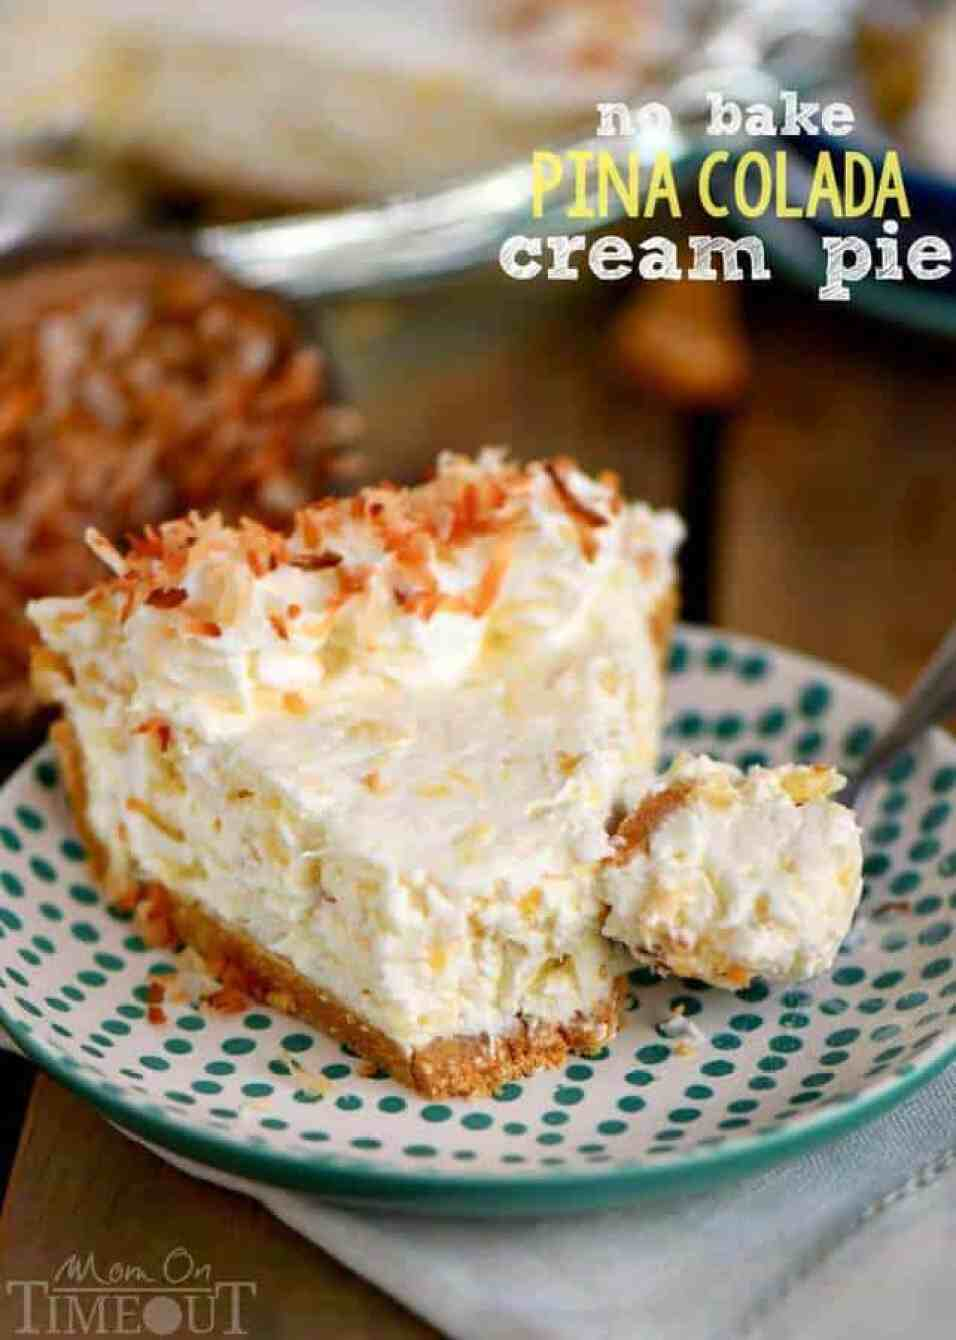 No Bake Pina Colada Cream Pie